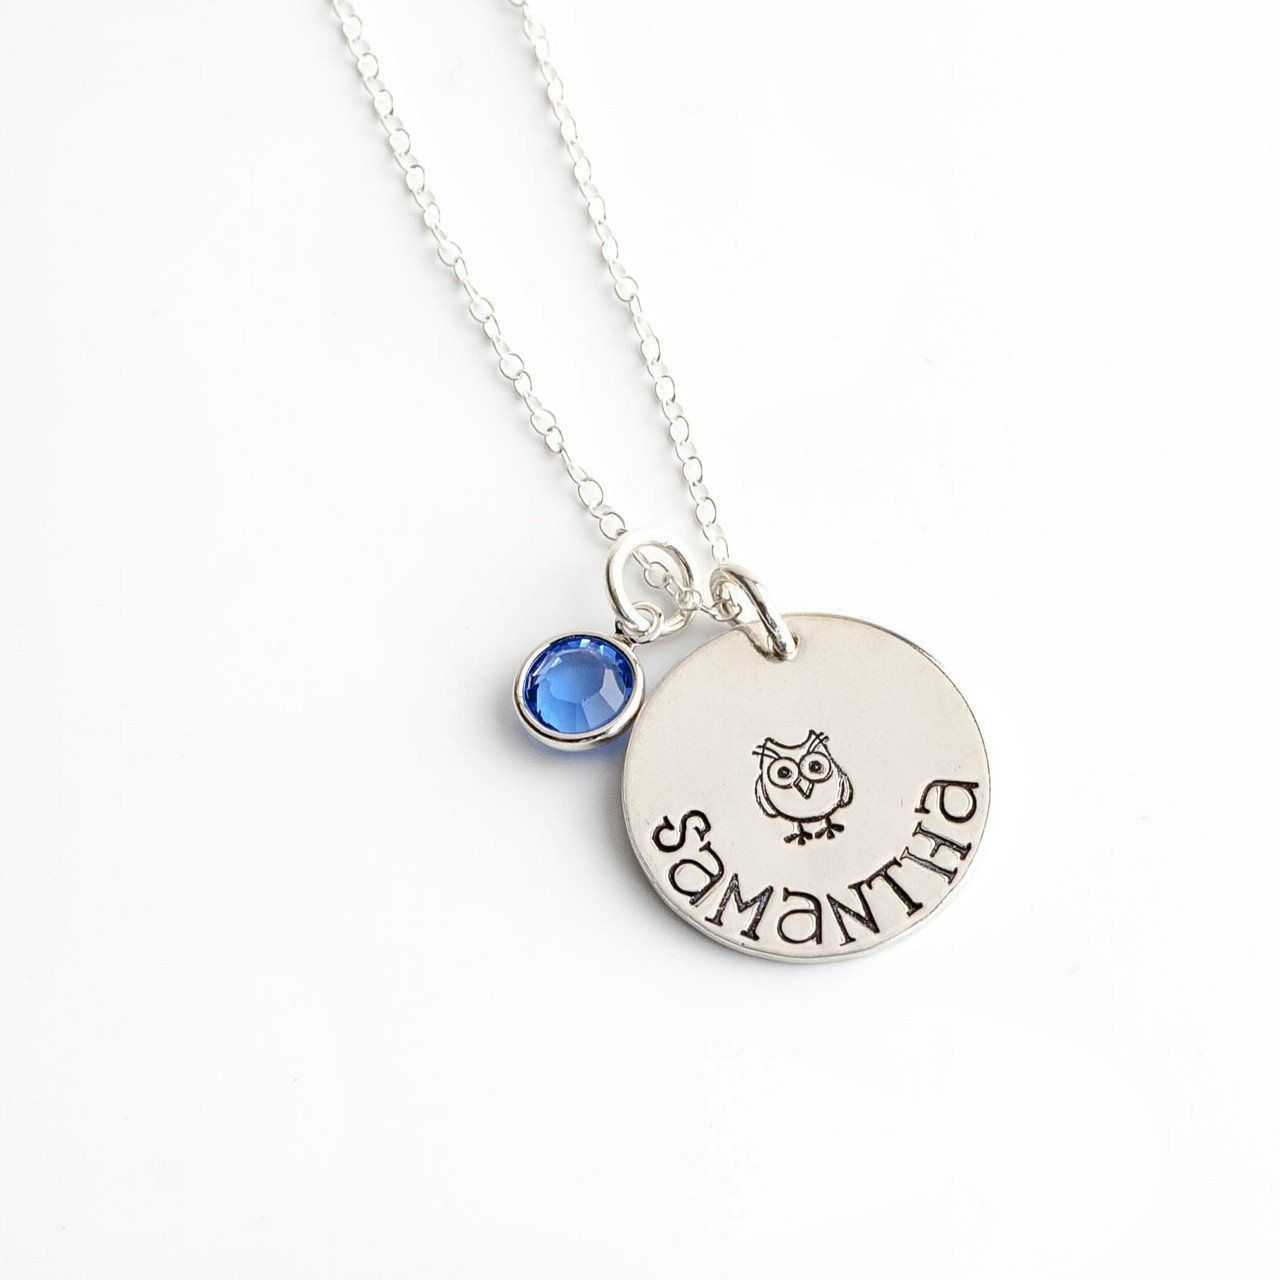 Personalized owl charm necklace sterling silver owl charms owl